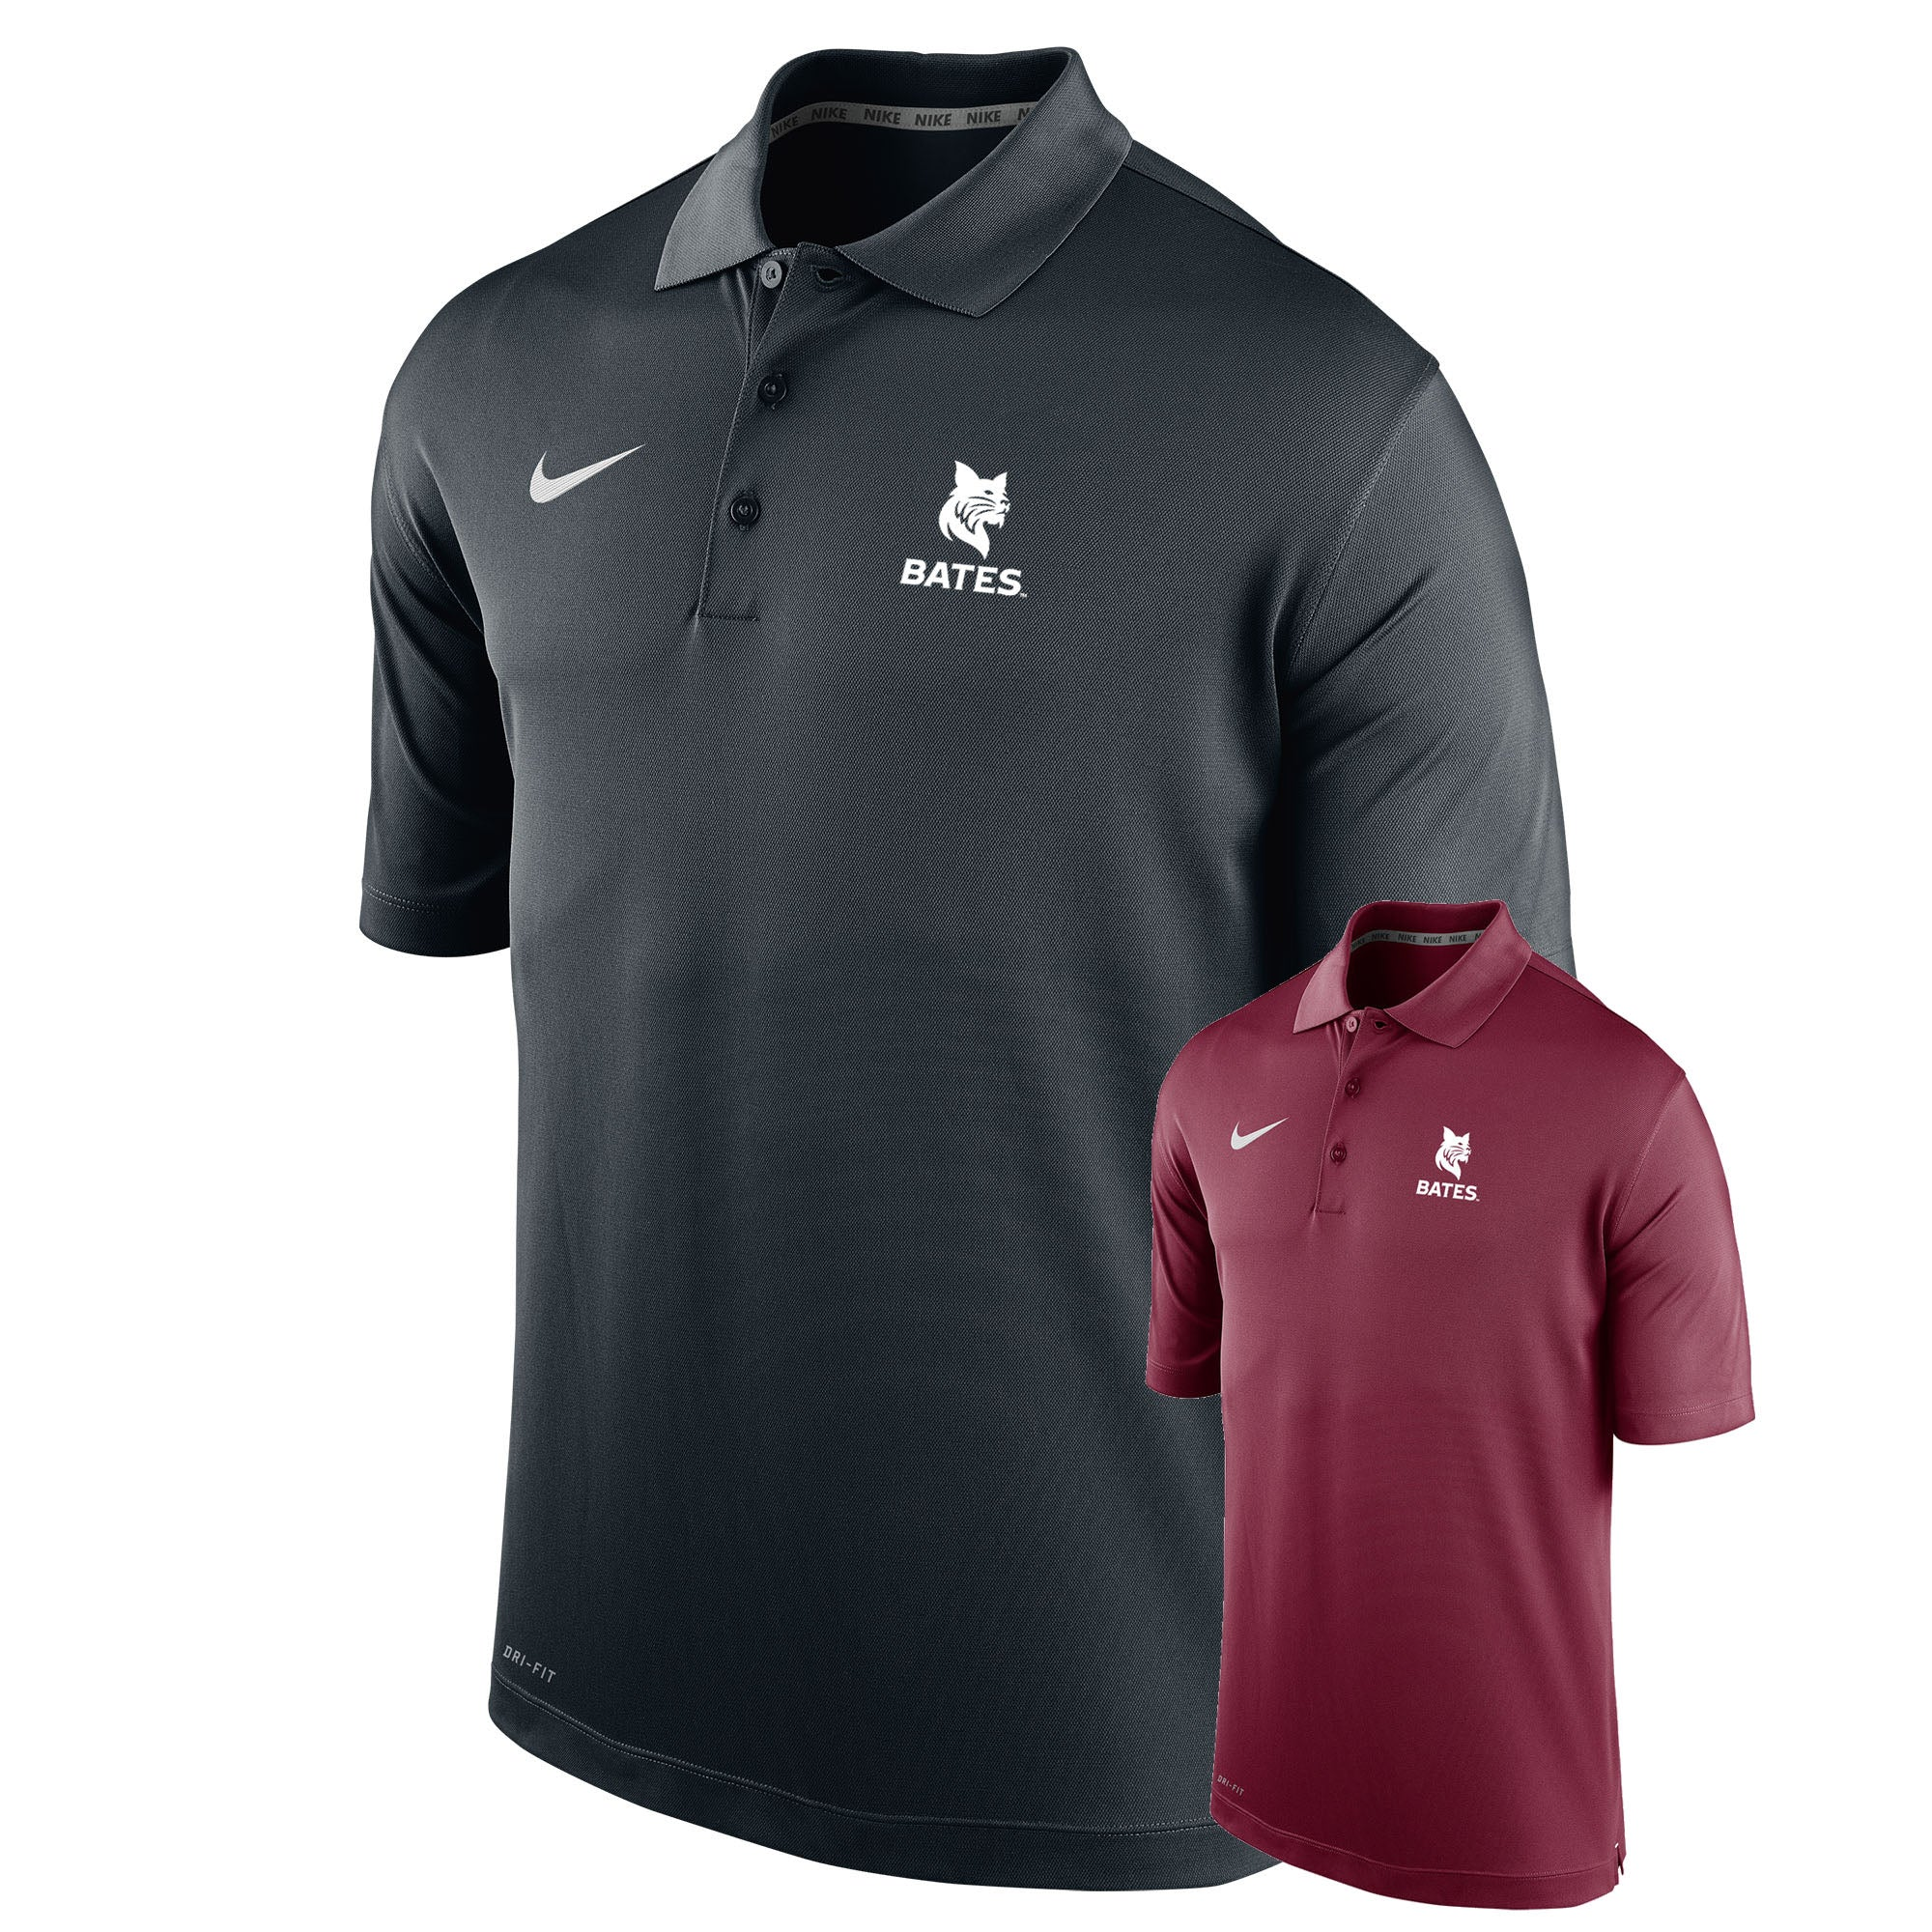 Nike Dri-Fit Polo with Bates Bobcat Imprint (2 Color Options) | Bates College Store